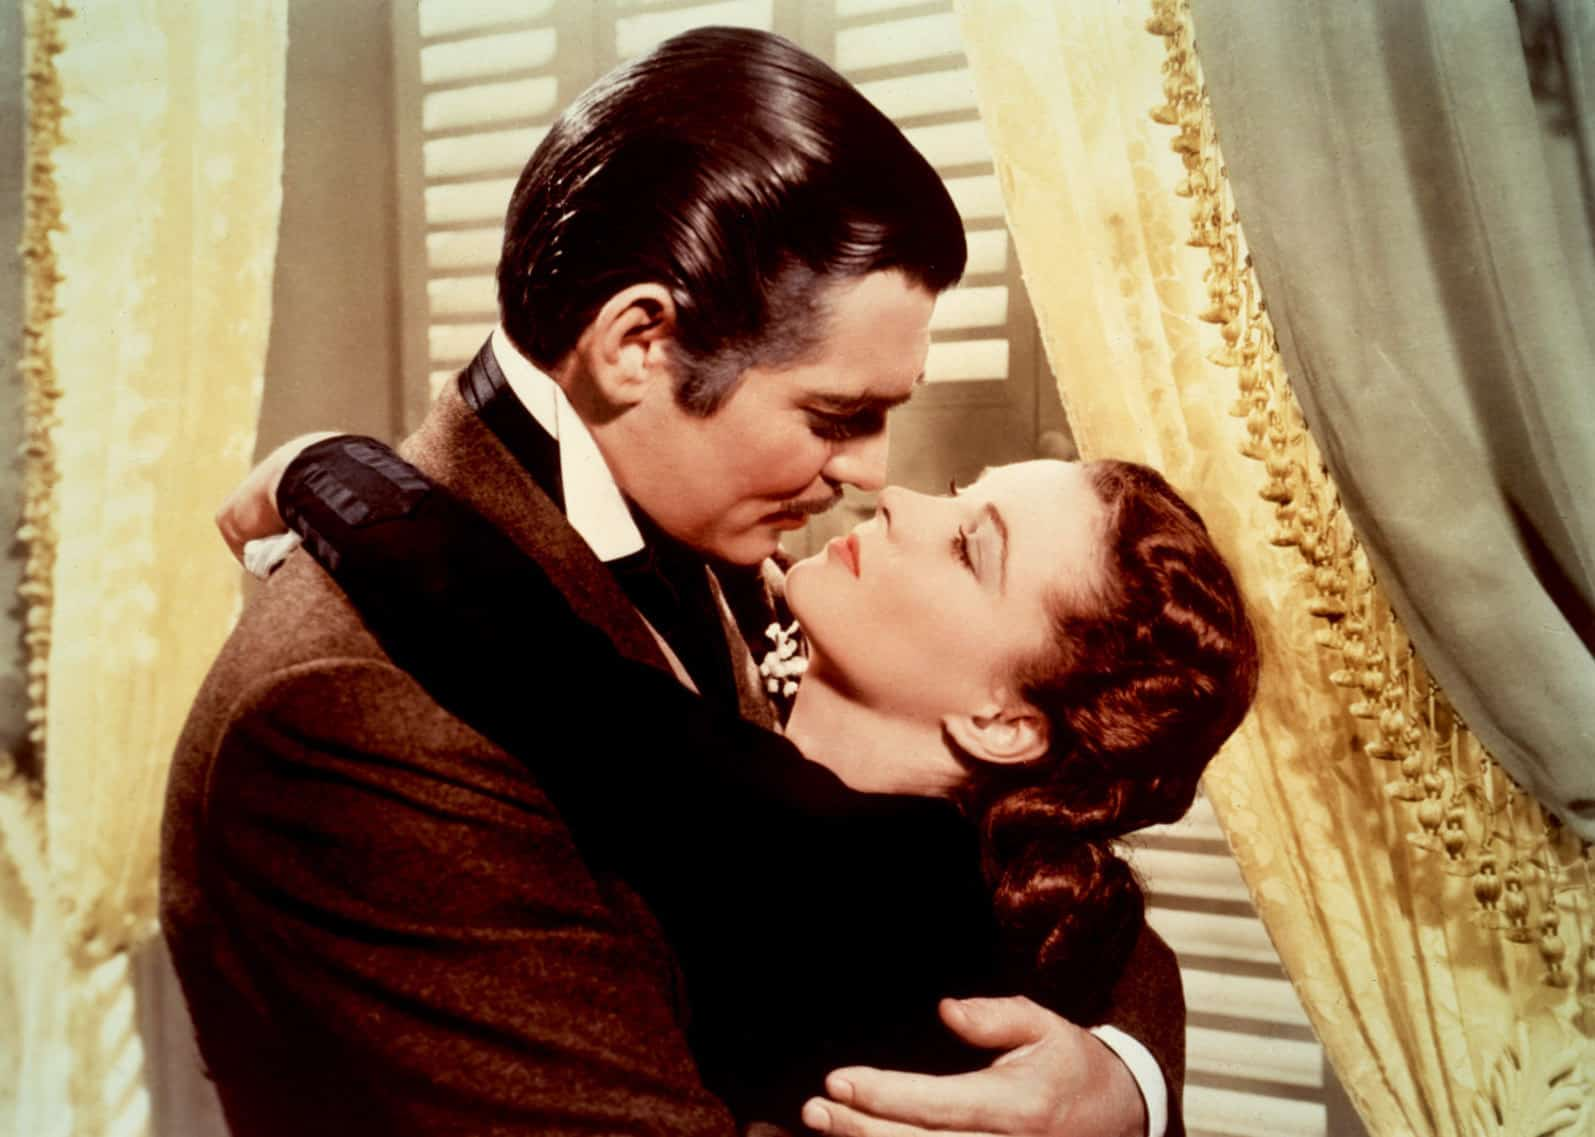 Clark Gable and Vivien Leigh in